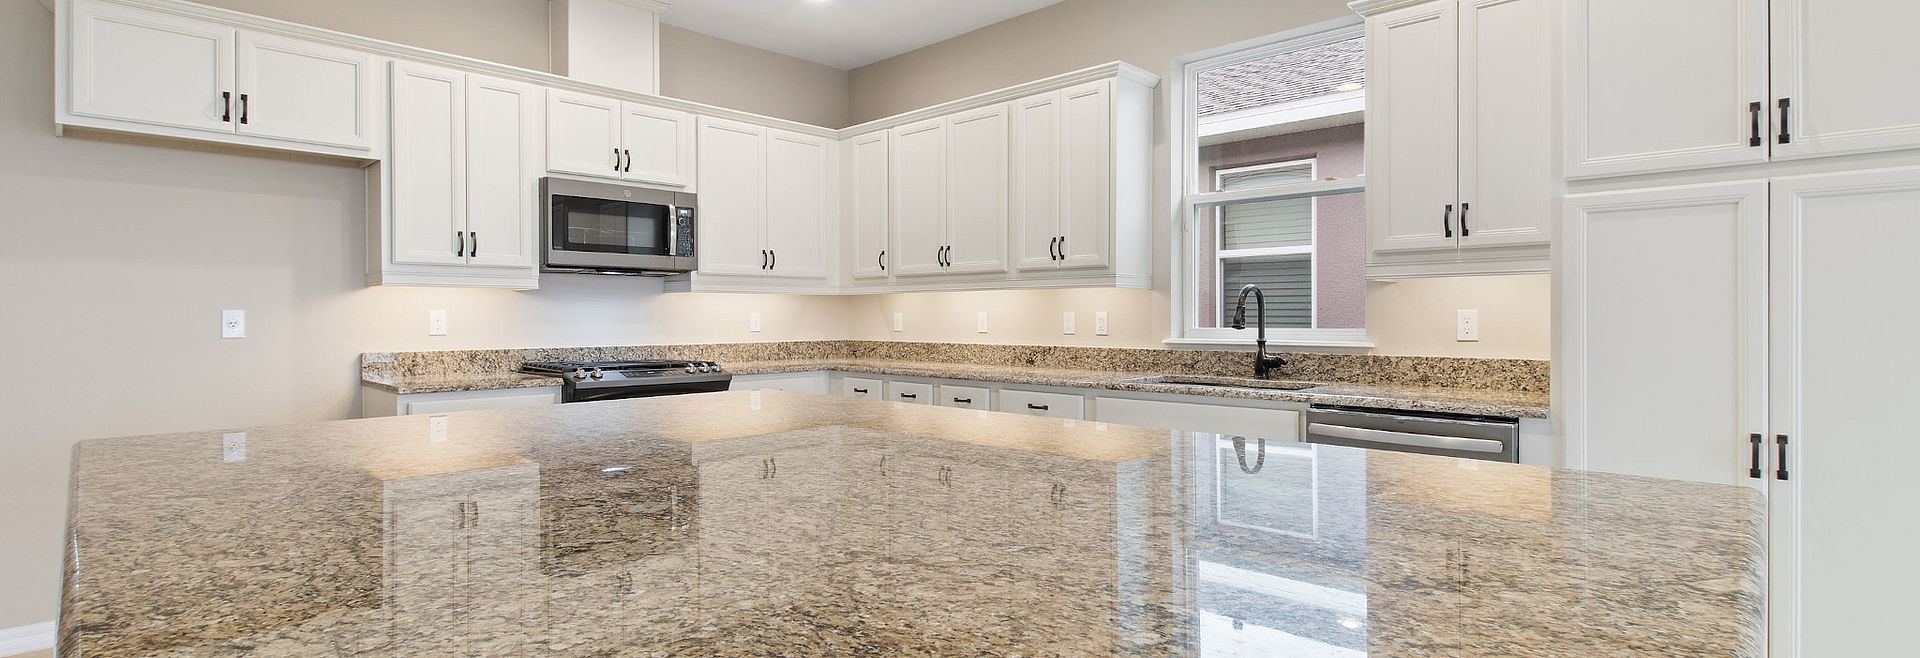 Trilogy Orlando Quick Move In Home Kitchen